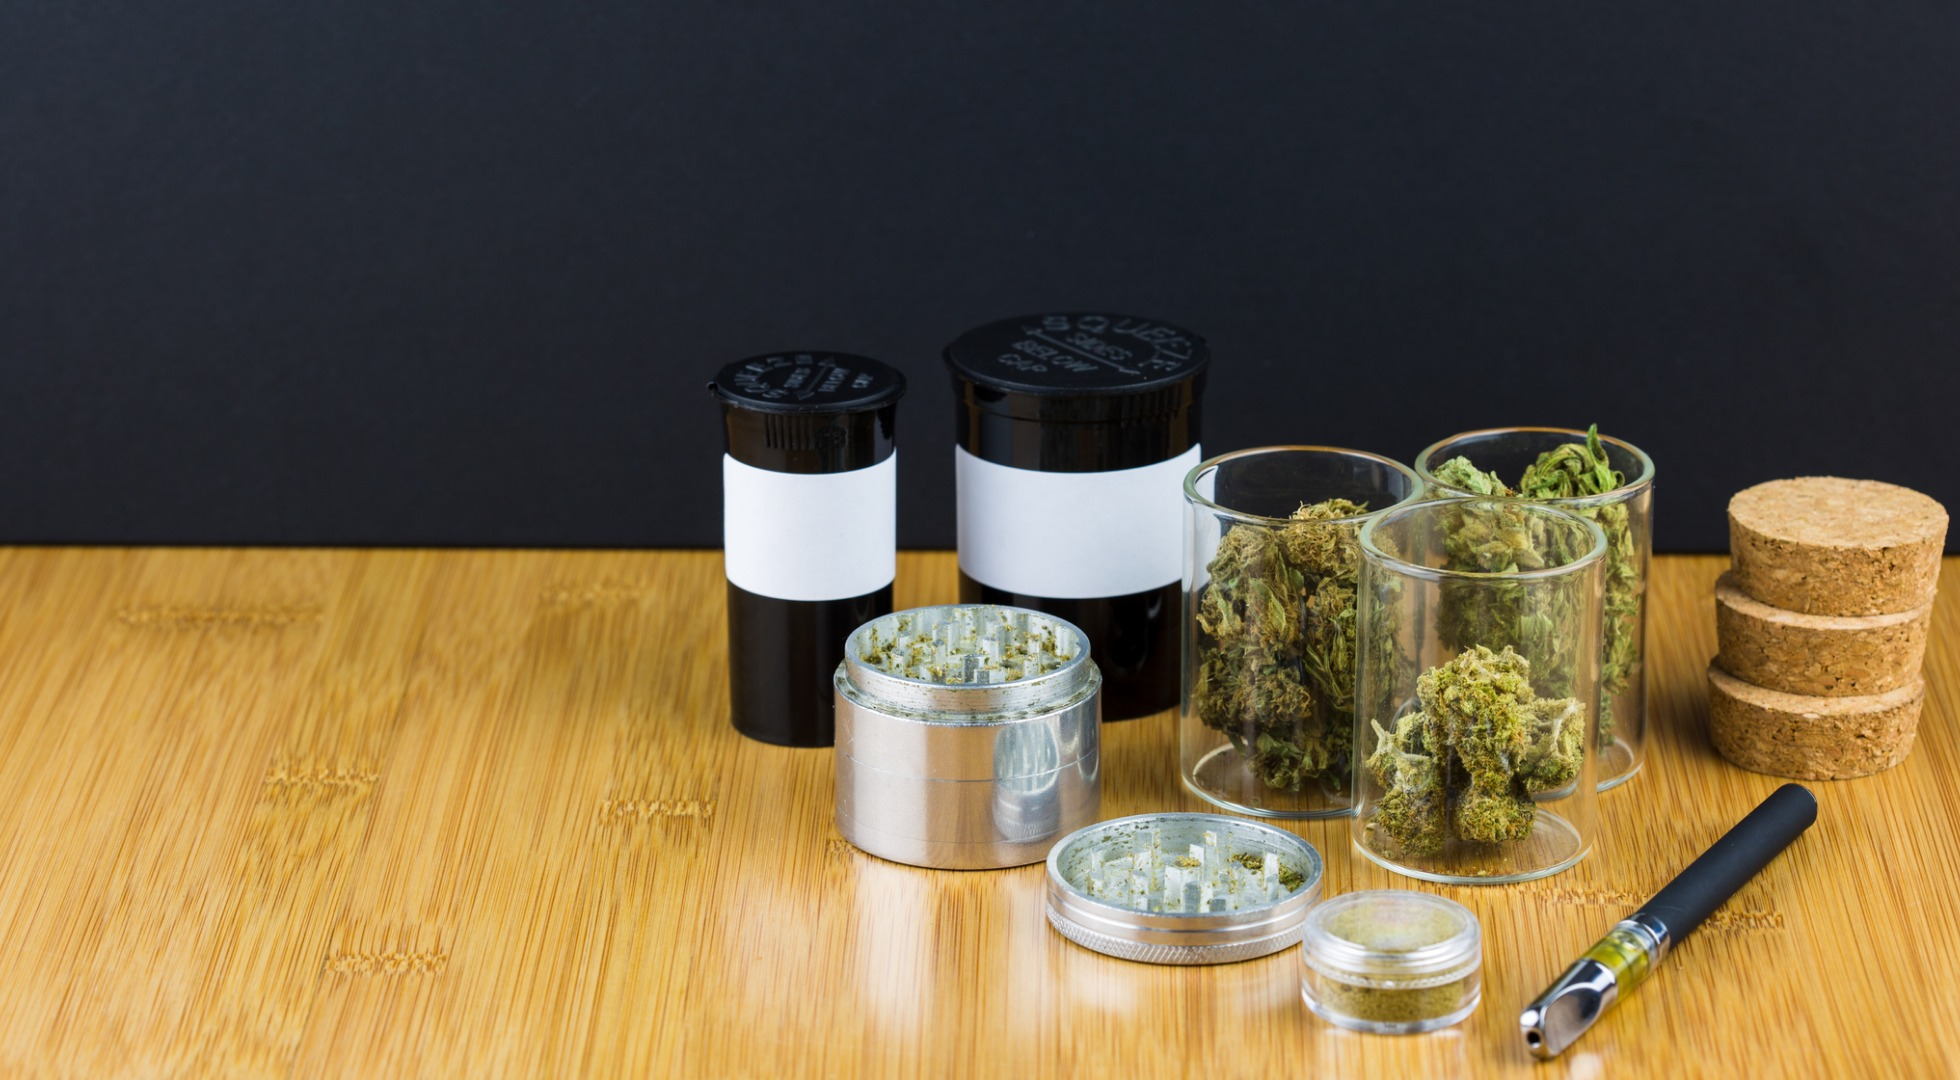 Weed containers